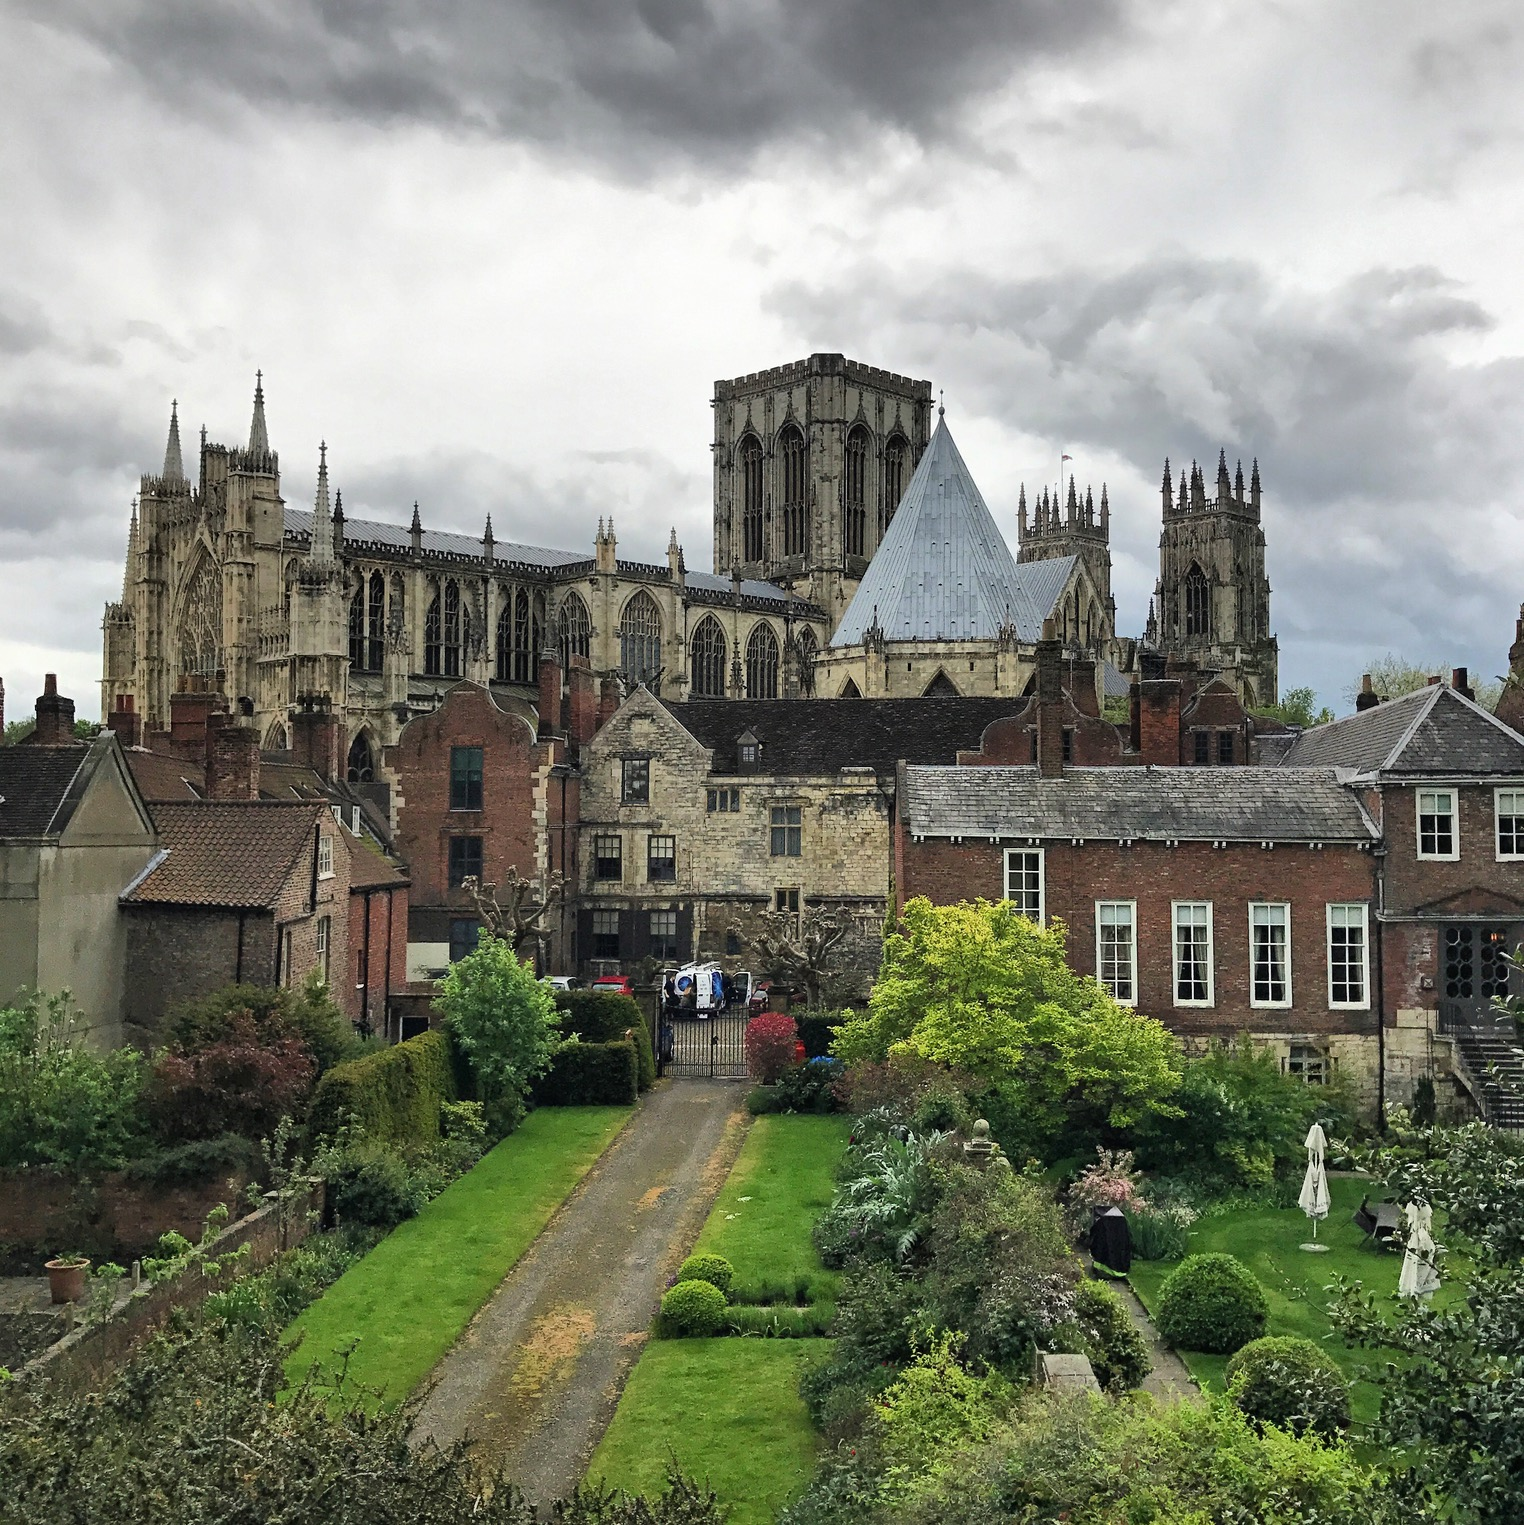 """From Wikipedia: The Cathedral and Metropolitical Church of Saint Peter in York, commonly known as York Minster, is the  cathedral  of  York ,  England , and is one of the largest of its kind in Northern Europe. The minster is the seat of the  Archbishop of York , the third-highest office of the  Church of England  (after the monarch as  Supreme Governor  and the  Archbishop of Canterbury ), and is the  mother church  for the  Diocese of York  and the  Province of York . [3]  It is run by a dean and chapter, under the  Dean of York . The title """" minster """" is attributed to churches established in the Anglo-Saxon period as missionary teaching churches, and serves now as an honorific title. [4]  Services in the minster are sometimes regarded as on the  High Church  or  Anglo-Catholic  end of the Anglican continuum. [5]   The minster has a very wide  Decorated Gothic  nave and  chapter house , a  Perpendicular Gothic  quire and east end and  Early English  North and South  transepts . The  nave  contains the West Window, constructed in 1338, and over the Lady Chapel in the east end is the Great East Window (finished in 1408), the largest expanse of medieval stained glass in the world. In the north transept is the Five Sisters Window, each  lancet being over 53 feet (16.3 m) high. [6]  The south transept contains a  rose window , while the West Window contains a heart-shaped design colloquially known as The Heart of Yorkshire."""